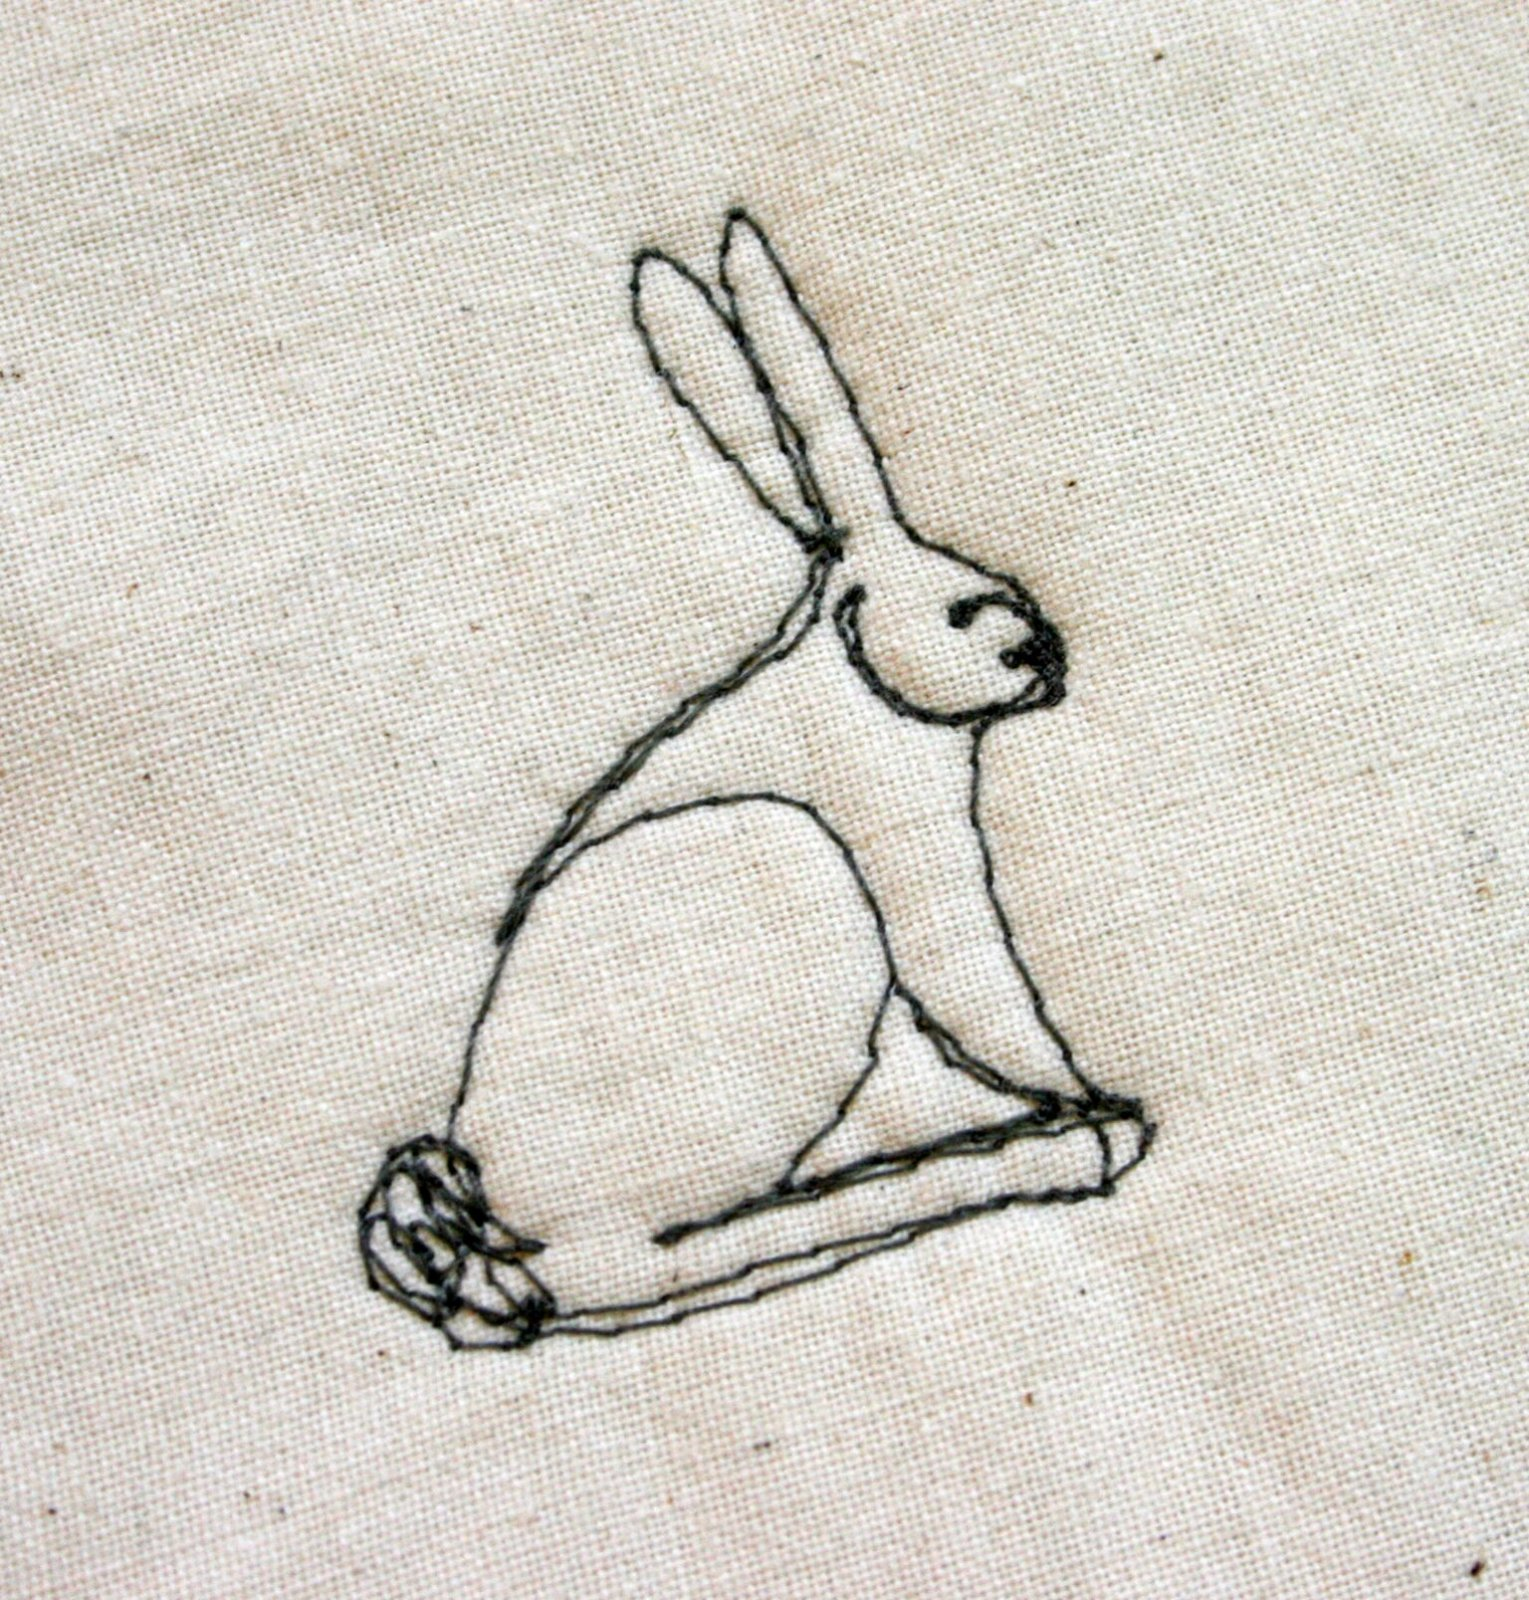 JANET CLARE - Drawing with your Sewing Machine